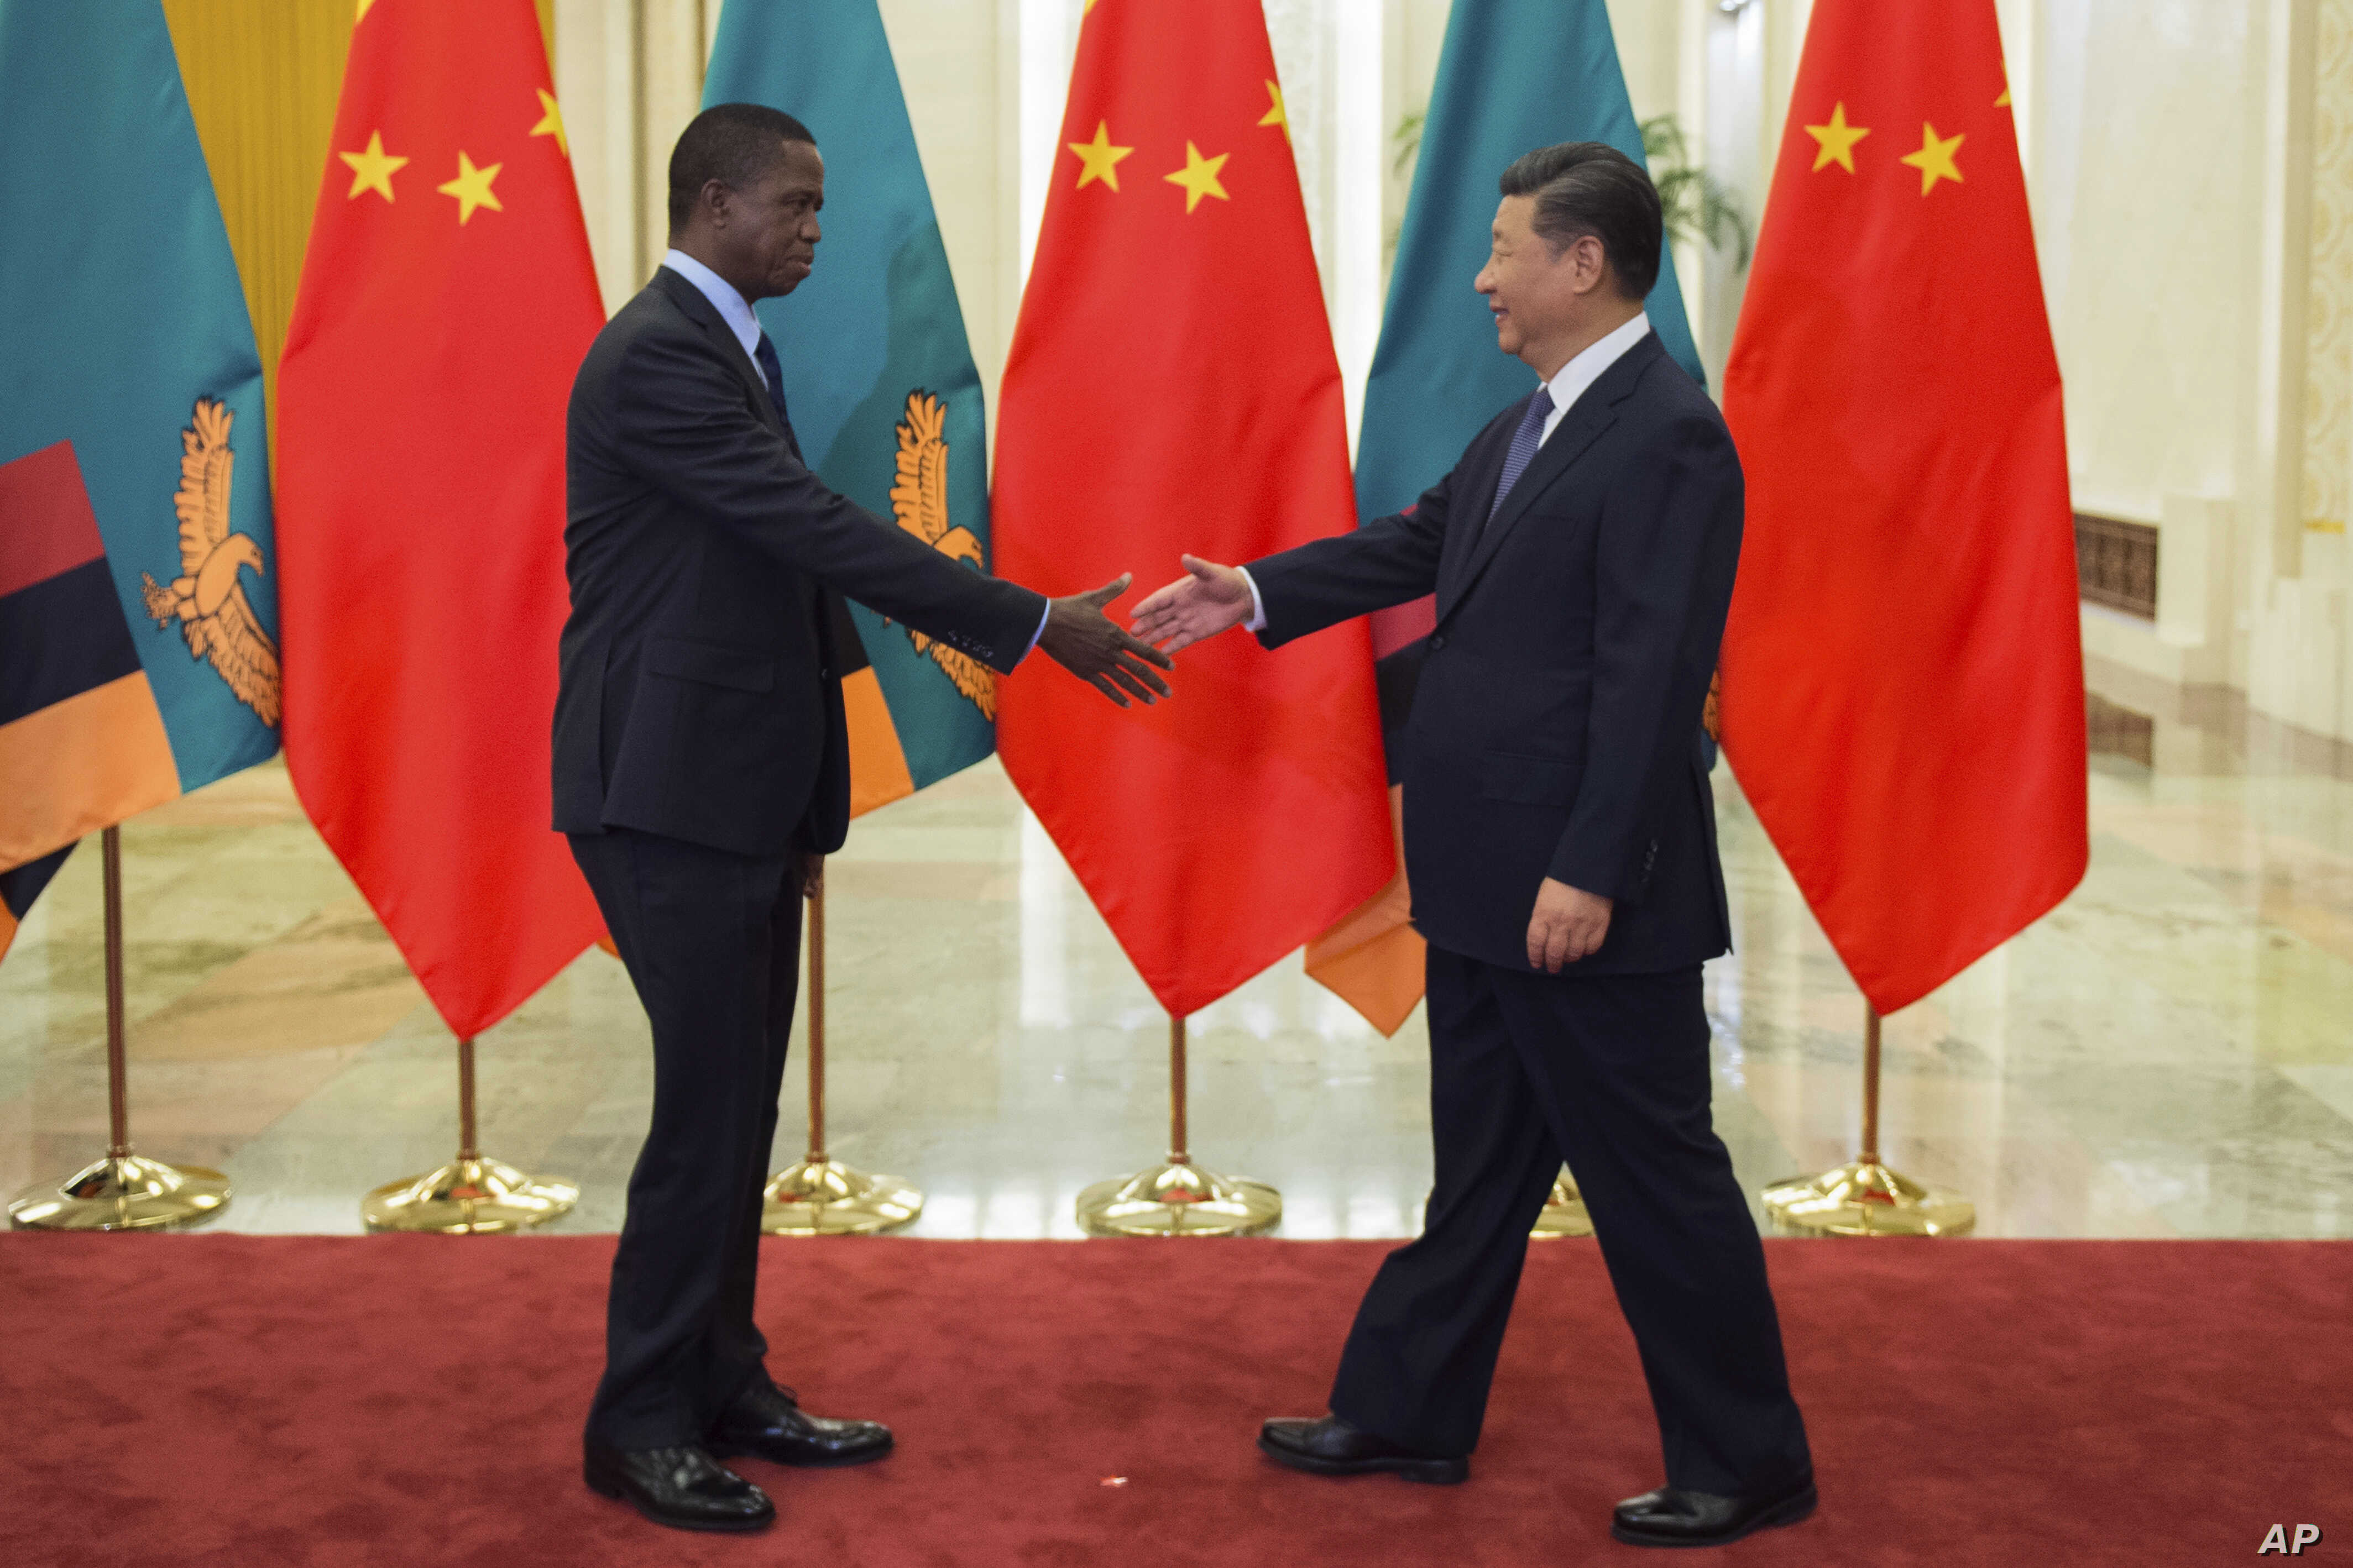 Zambia Continues to Borrow as China Debt Concerns Rise